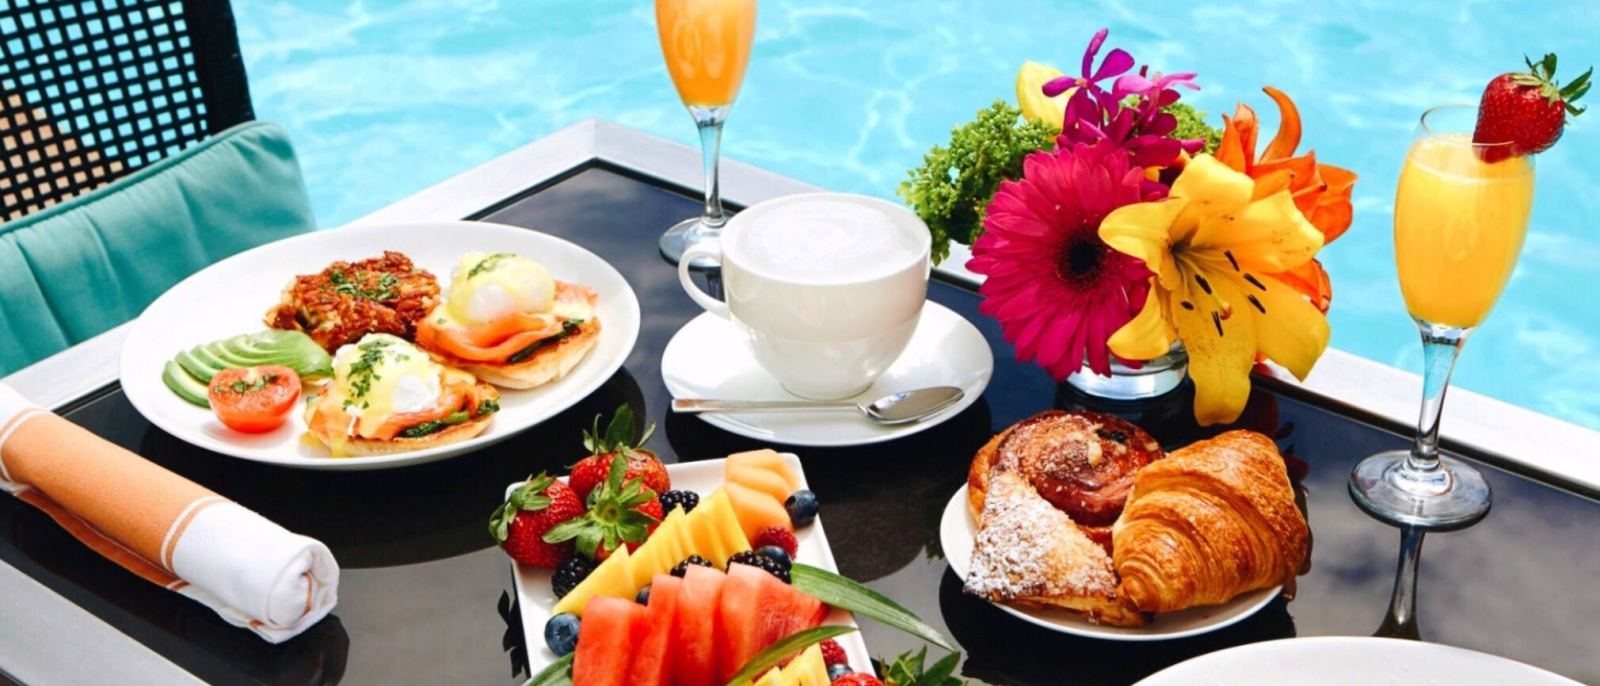 Poolside brunch at CIRCA 55 in The Beverly Hilton